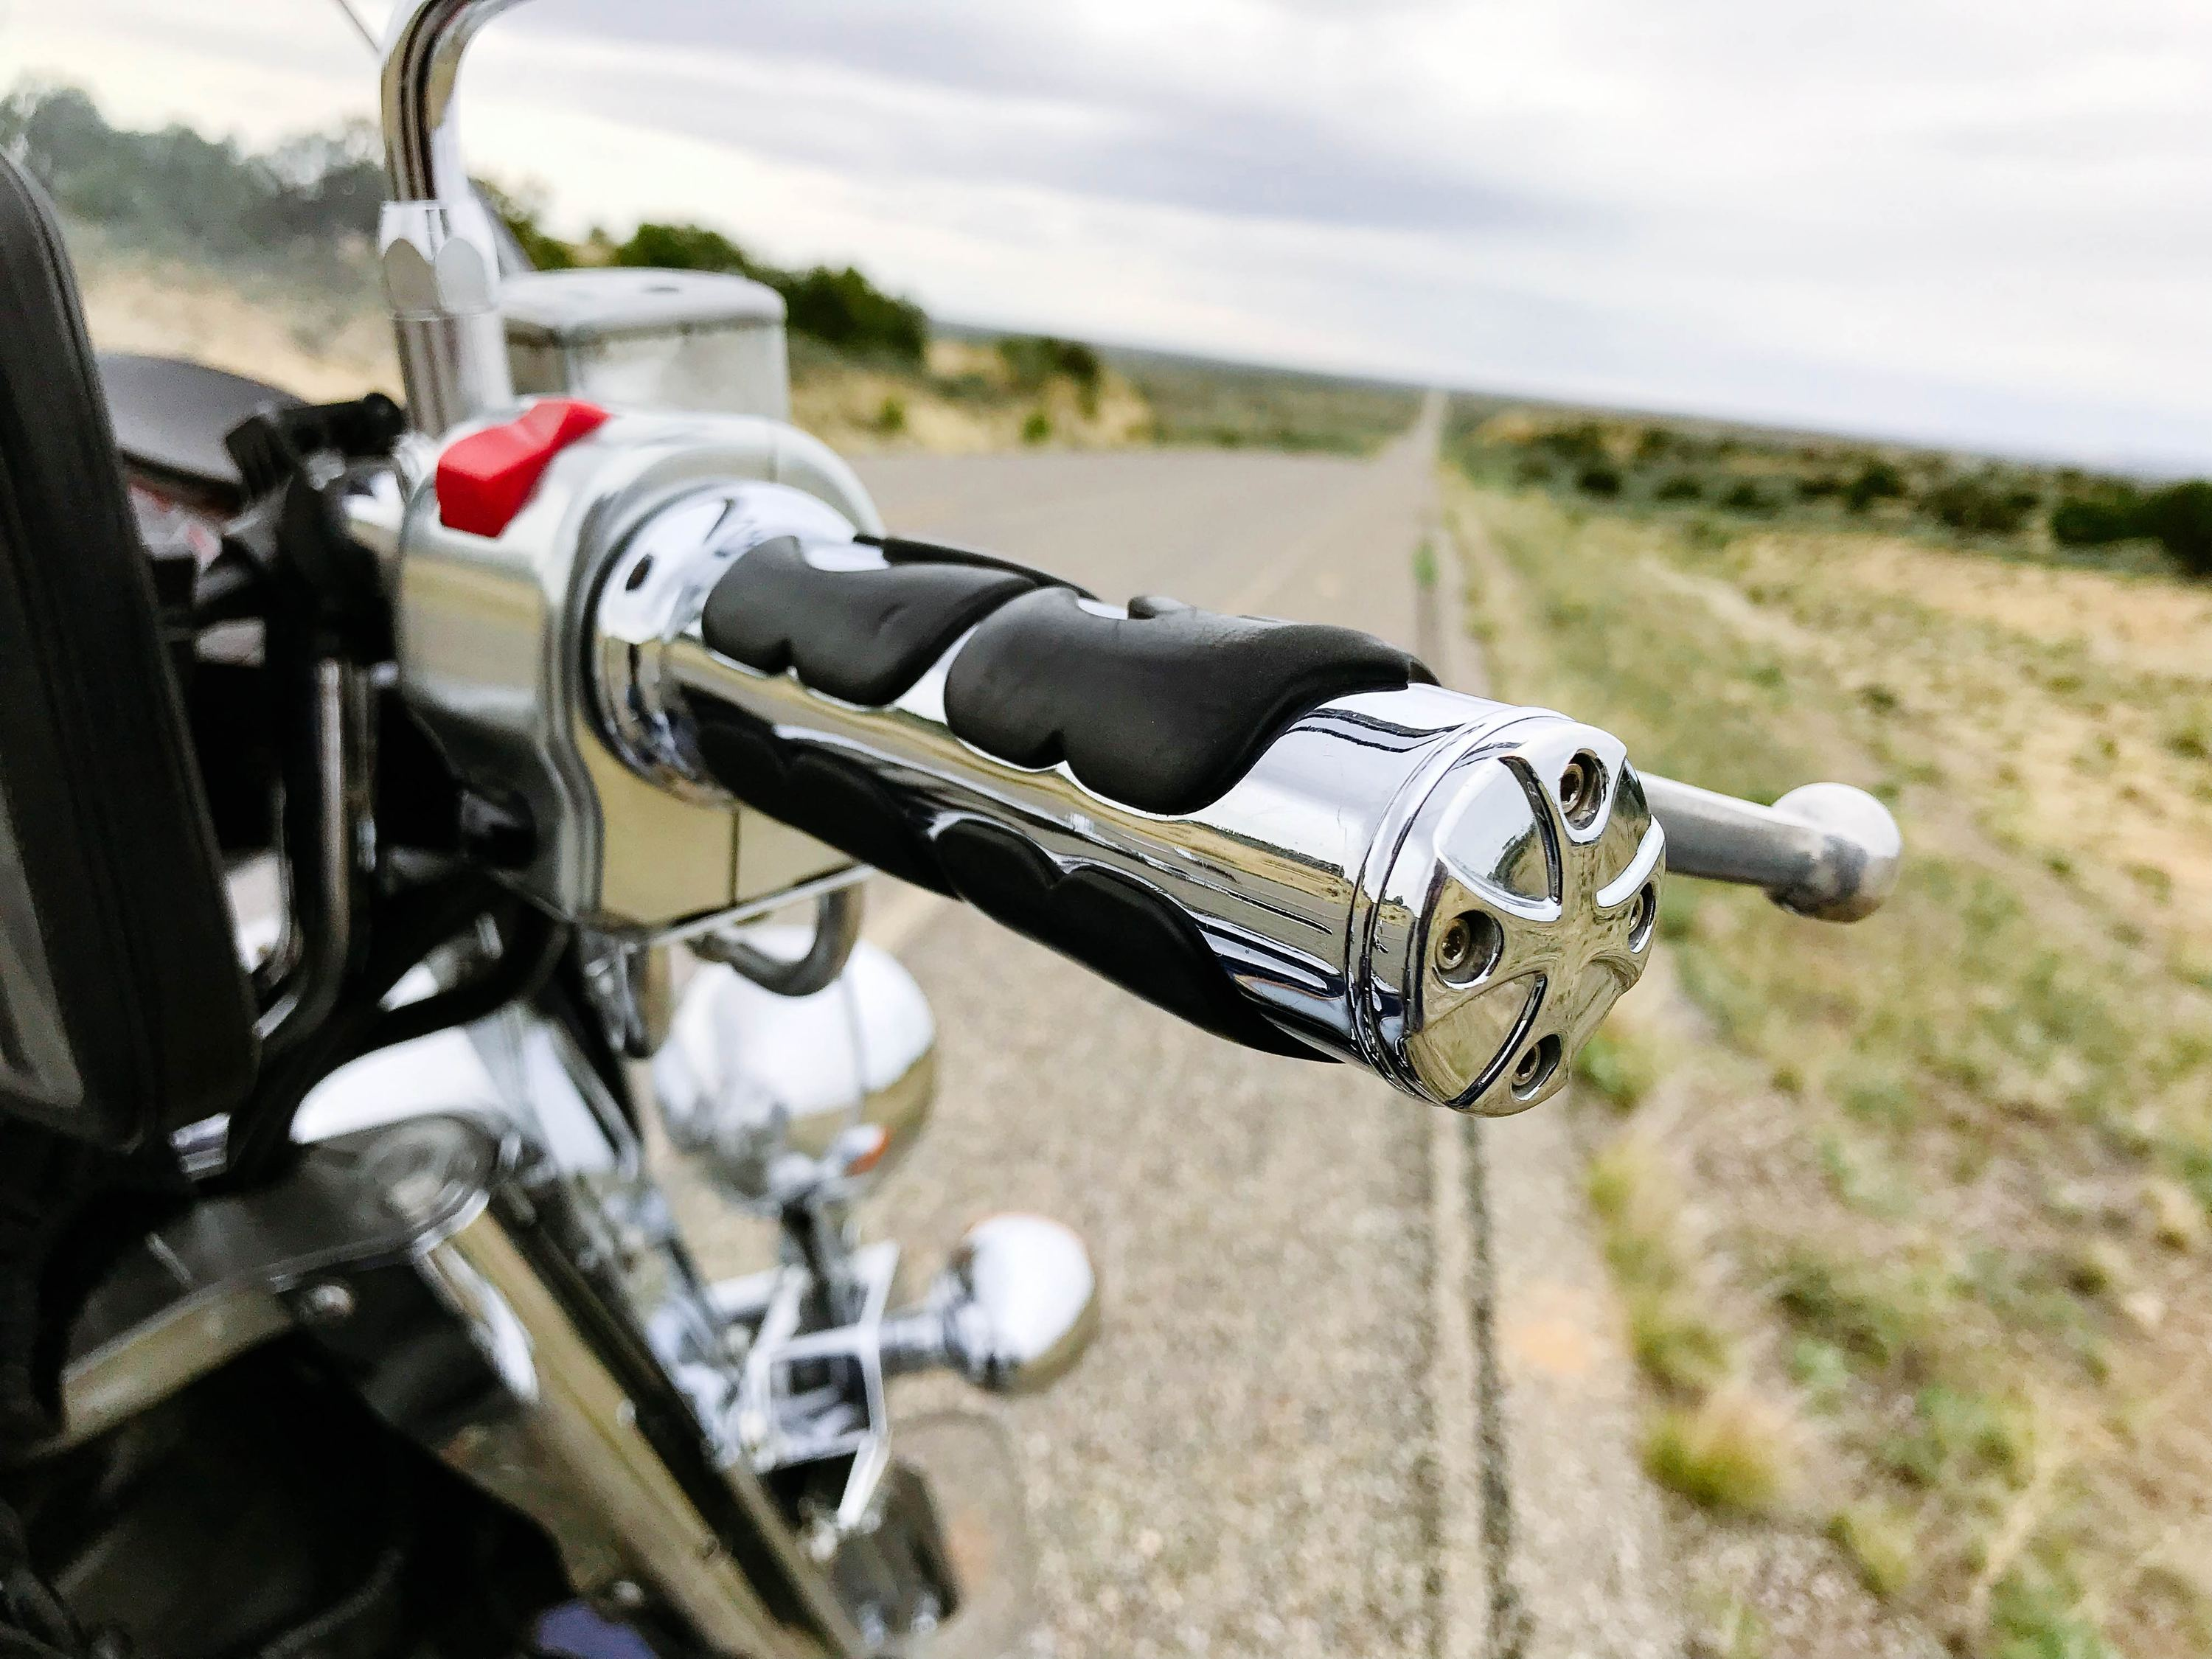 Motorcycle throttle in close focus